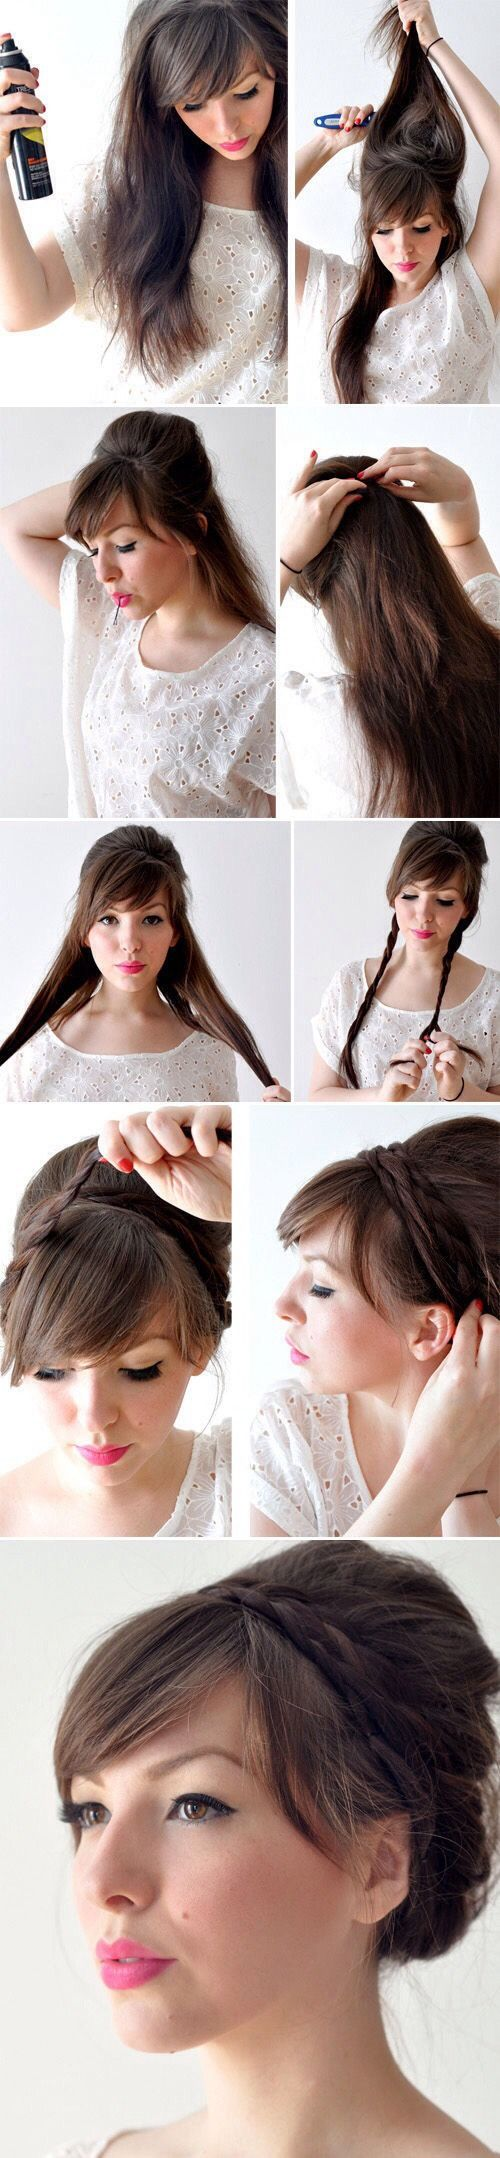 Simple, Elegant Up-do! So Pretty!